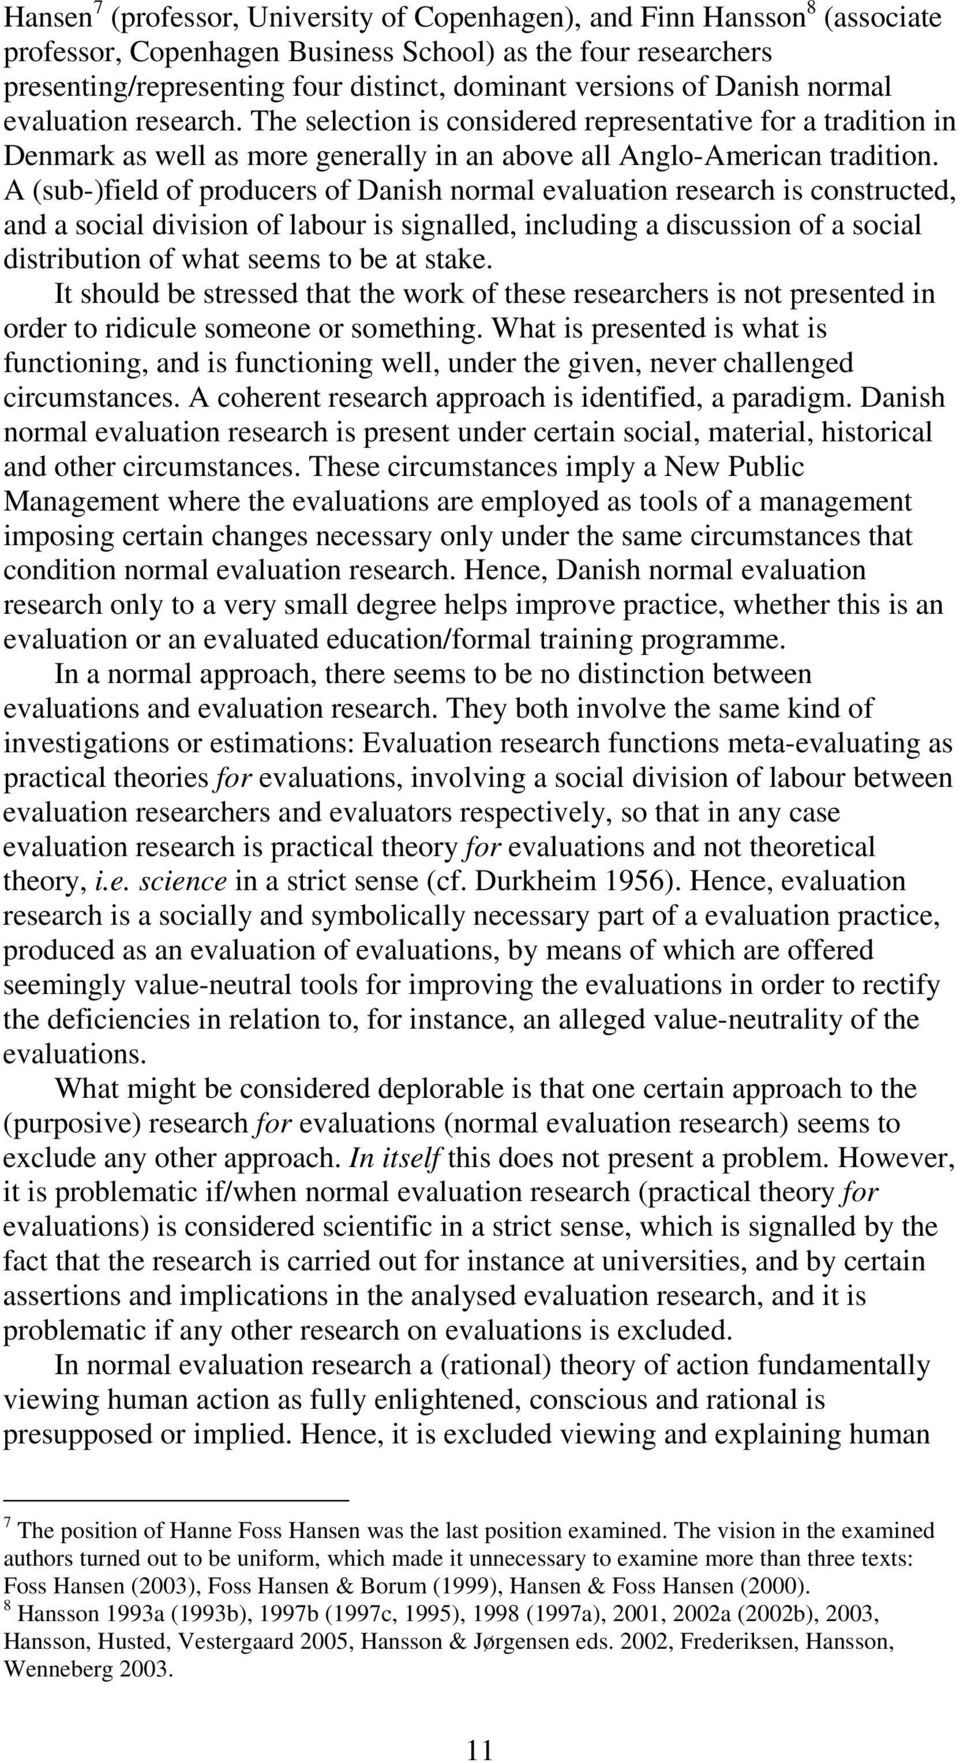 A (sub-)field of producers of Danish normal evaluation research is constructed, and a social division of labour is signalled, including a discussion of a social distribution of what seems to be at